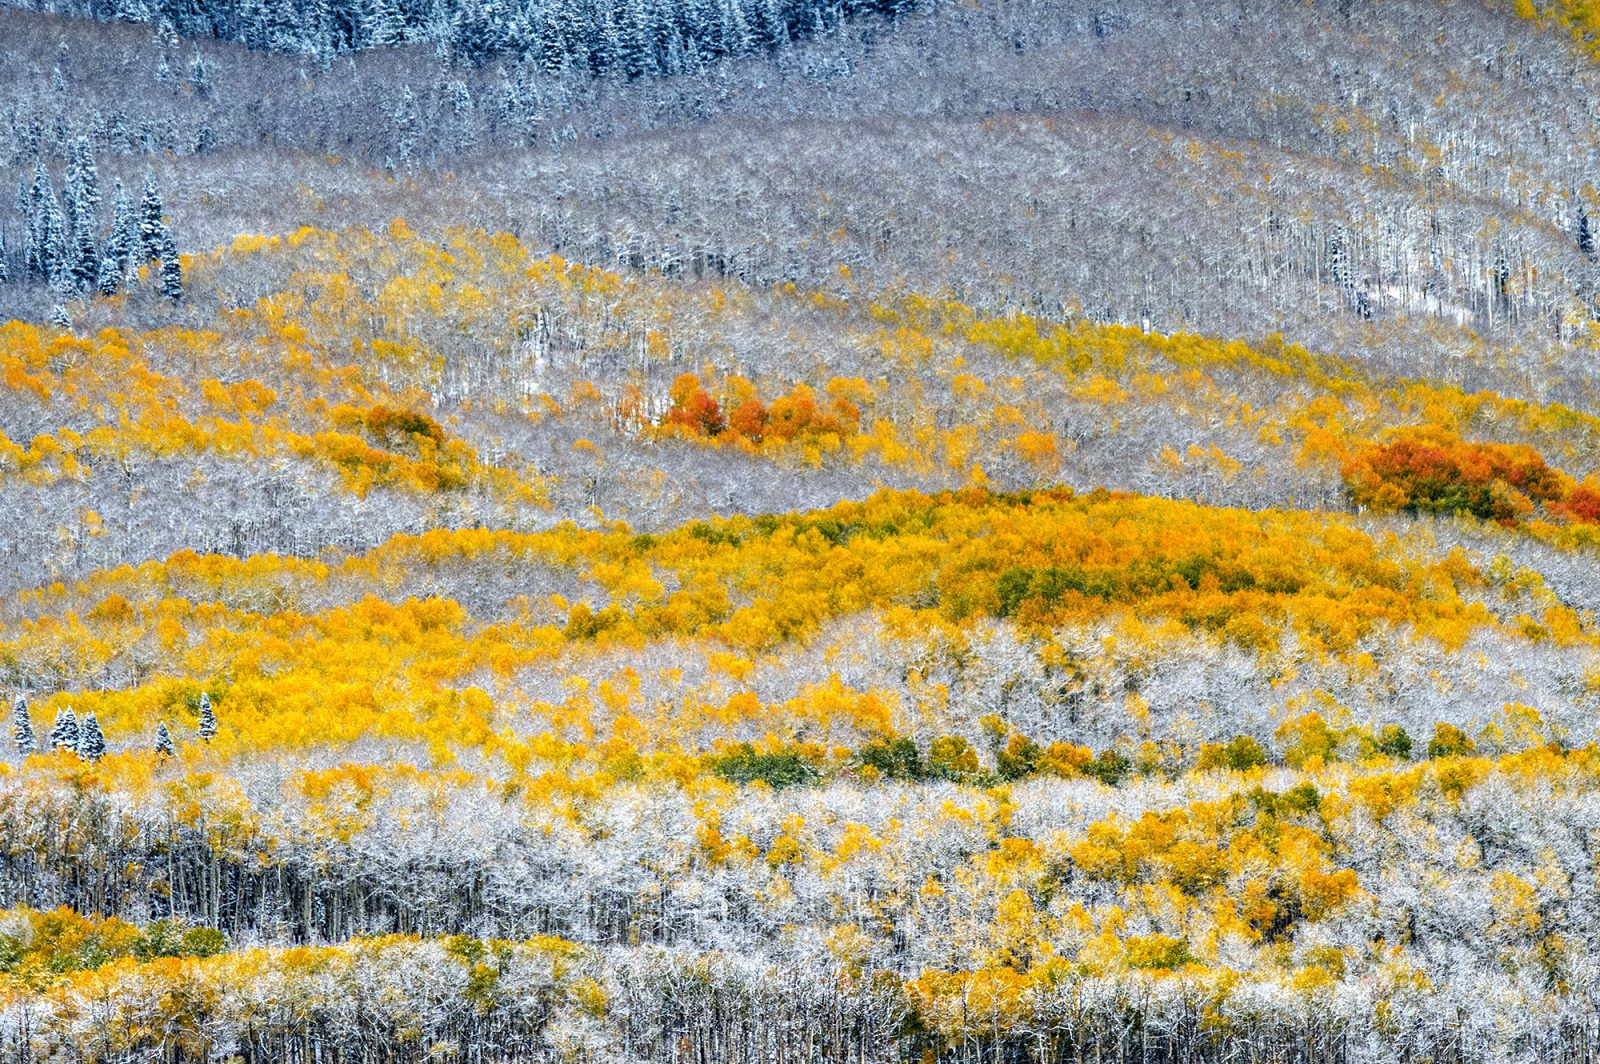 Aspen leaves cry in the early first snow